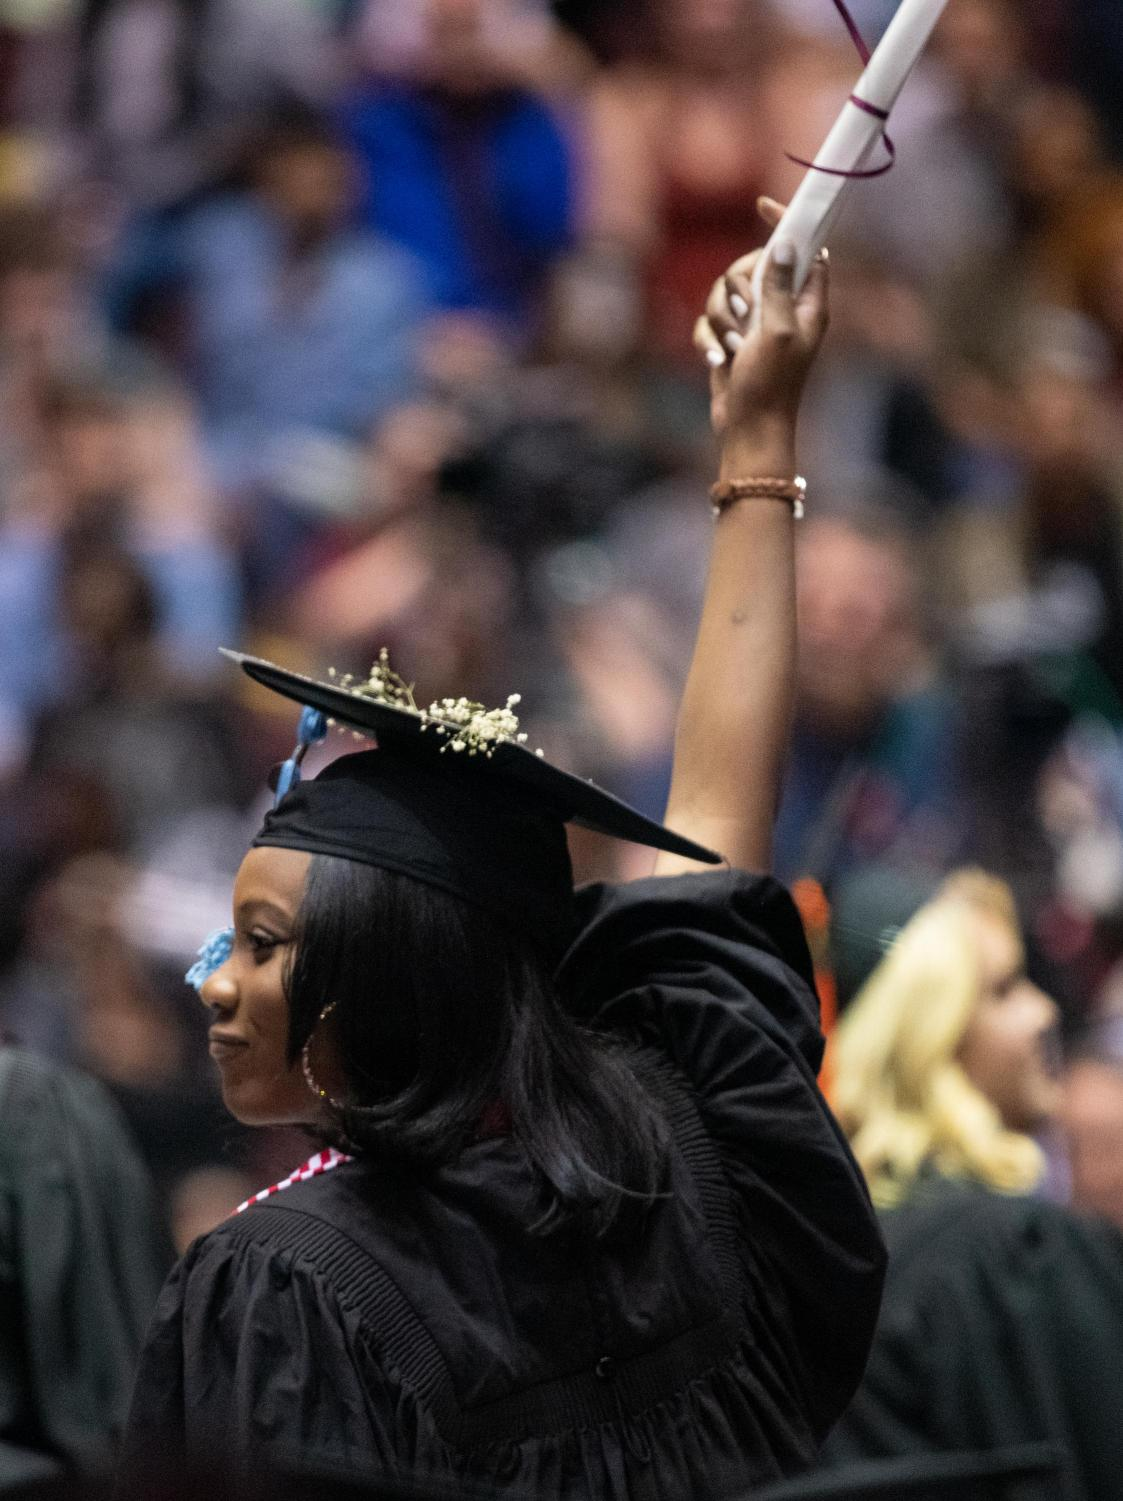 Alliyah+Bridges+holds+up+her+diploma+on+Saturday%2C+May+11%2C+2019+during+the+2019+commencement+inside+the+SIU+Arena.+Trotter+graduated+with+a+bachelors+in+cinema+and+photography.